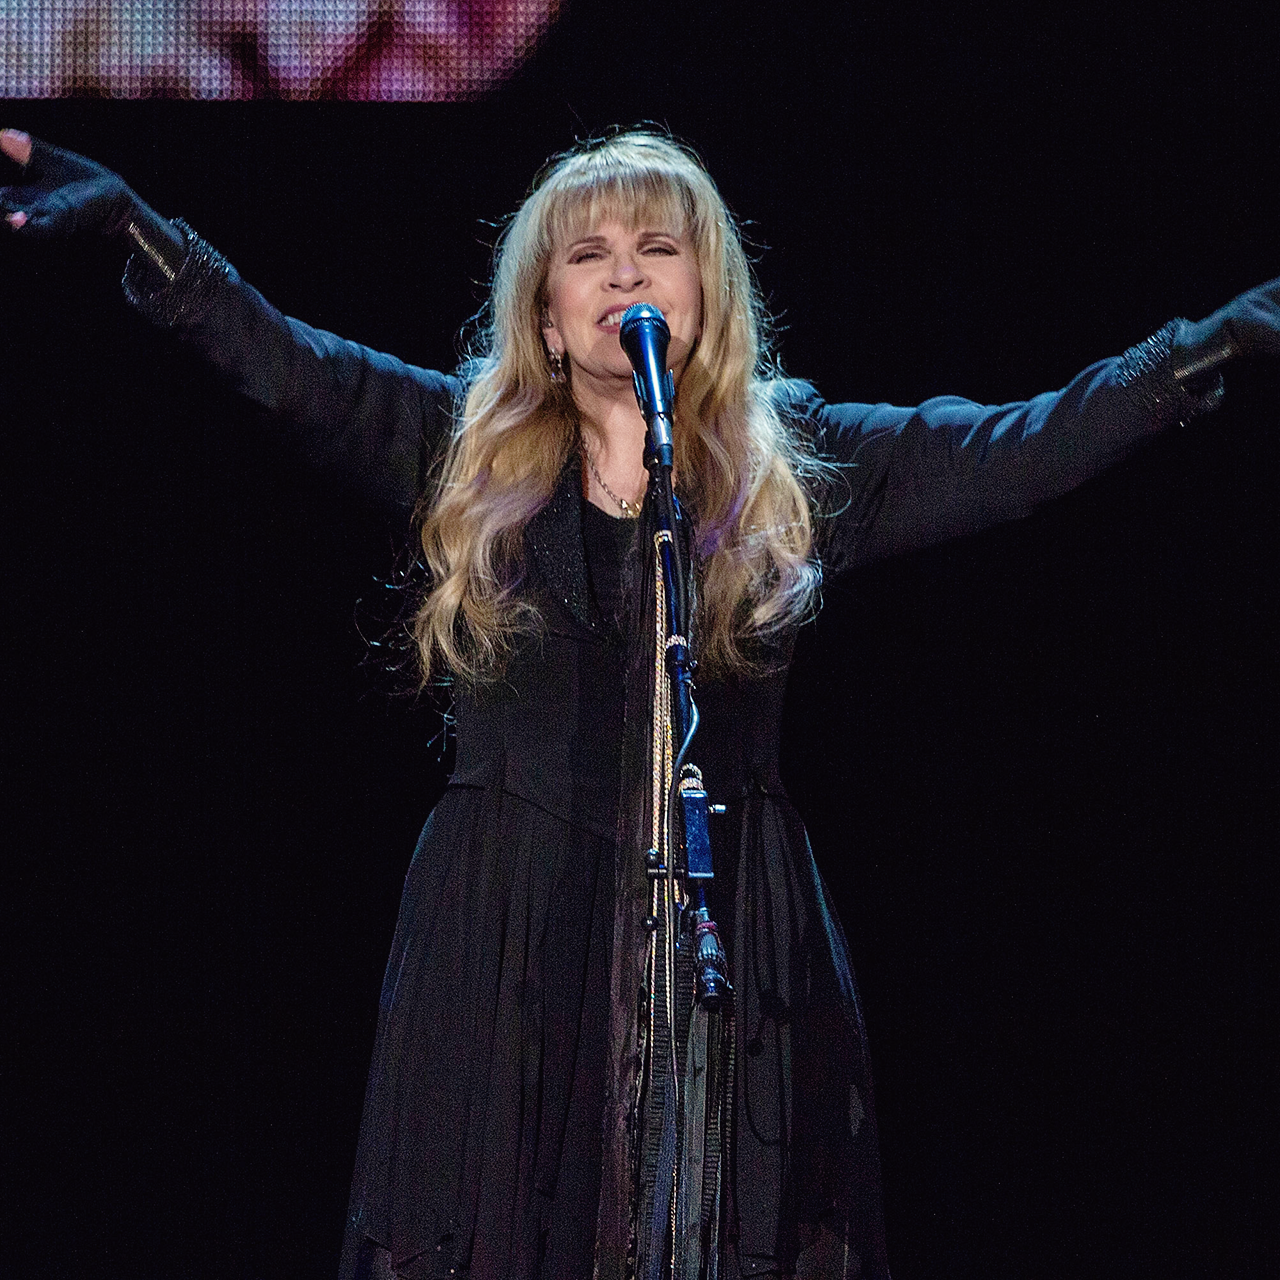 Stevie   ~ ☆♥❤♥☆ ~   smiling and holding her arms up high onstage, acknowledging the audience in the San Diego, California, concert, on March 2nd, 2017, during her '24 Karat Gold' US 2017 tour; photo credit: Daniel Knighton via Getty images